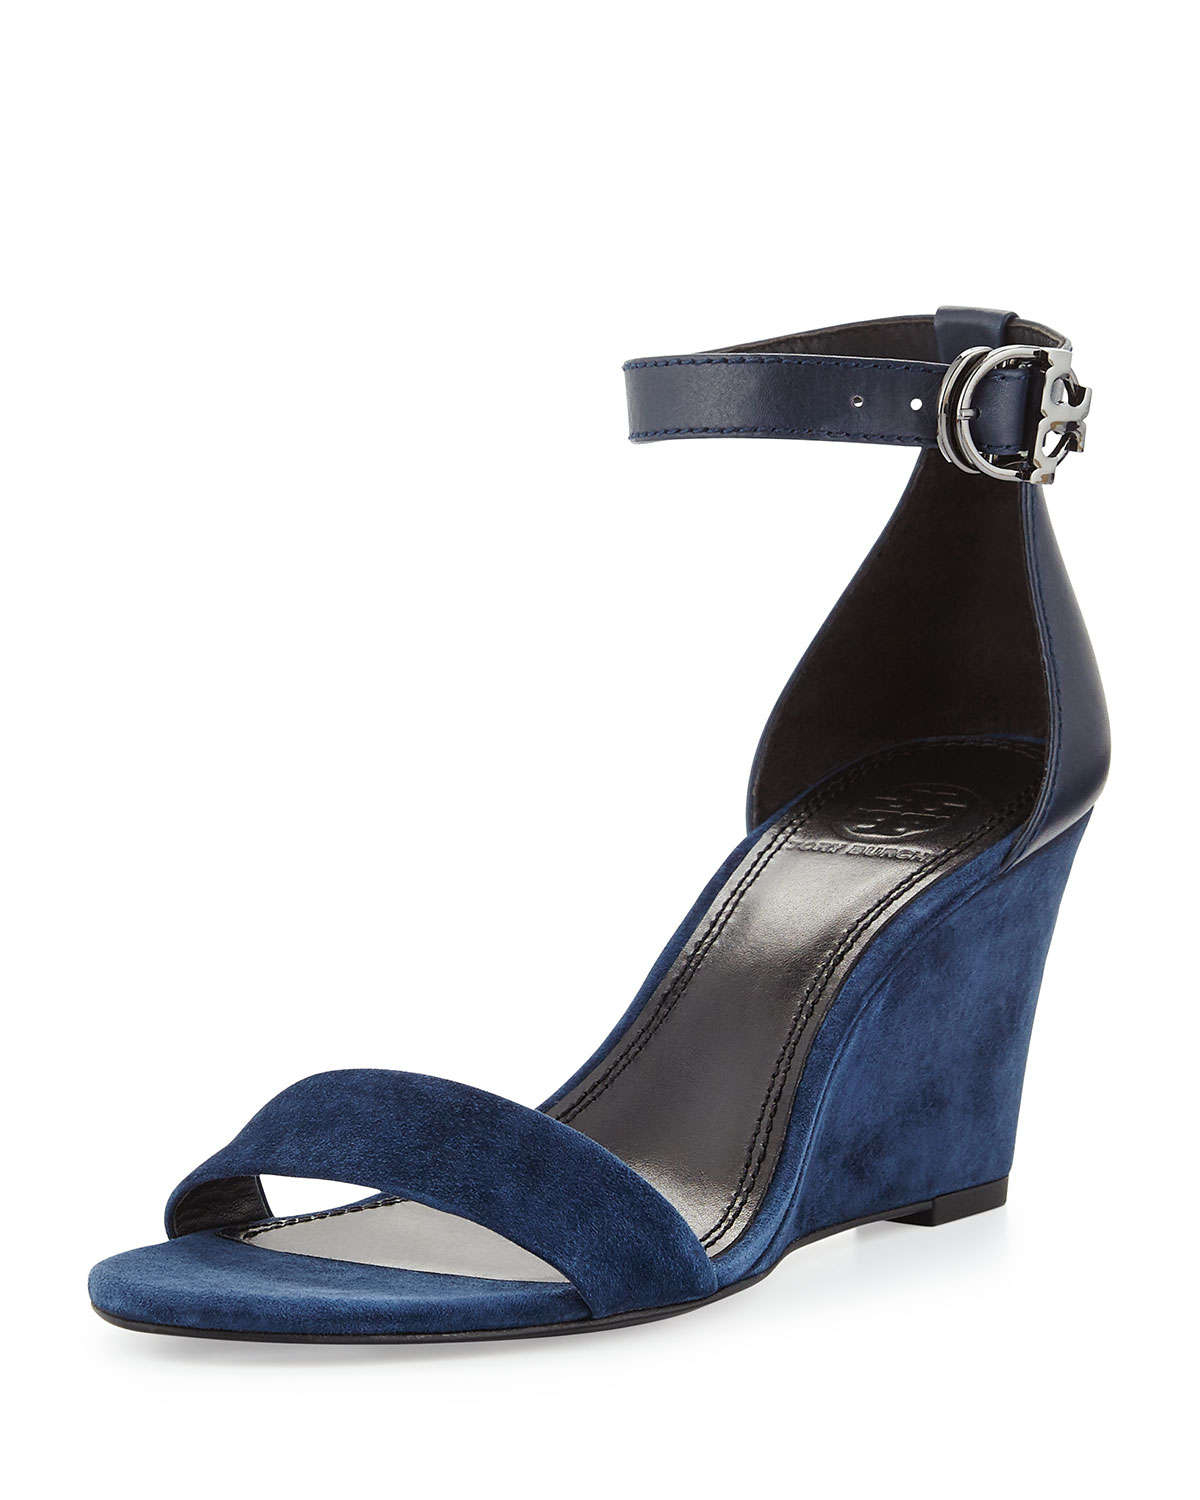 Tory Burch Dark Blue Shoes